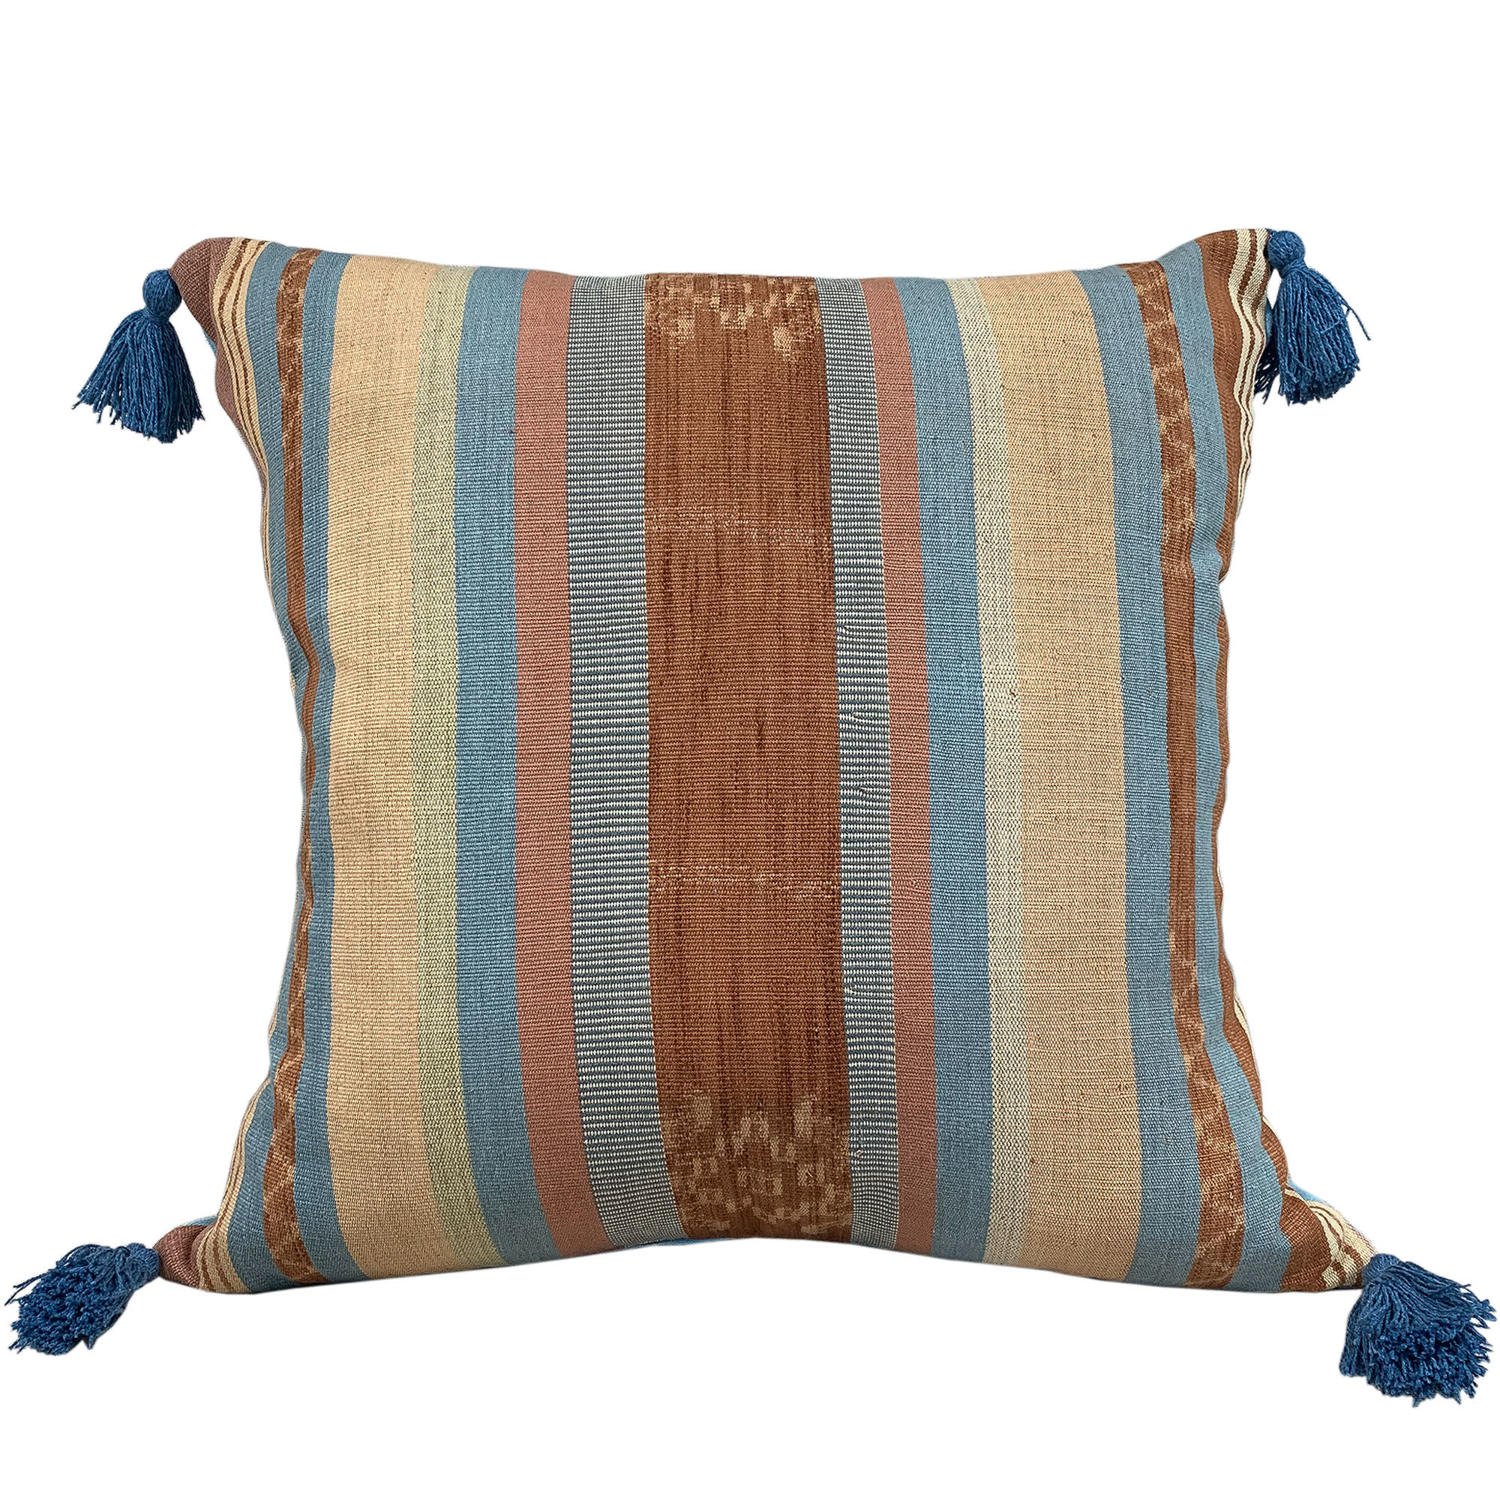 Flores ikat cushion with blue tassels